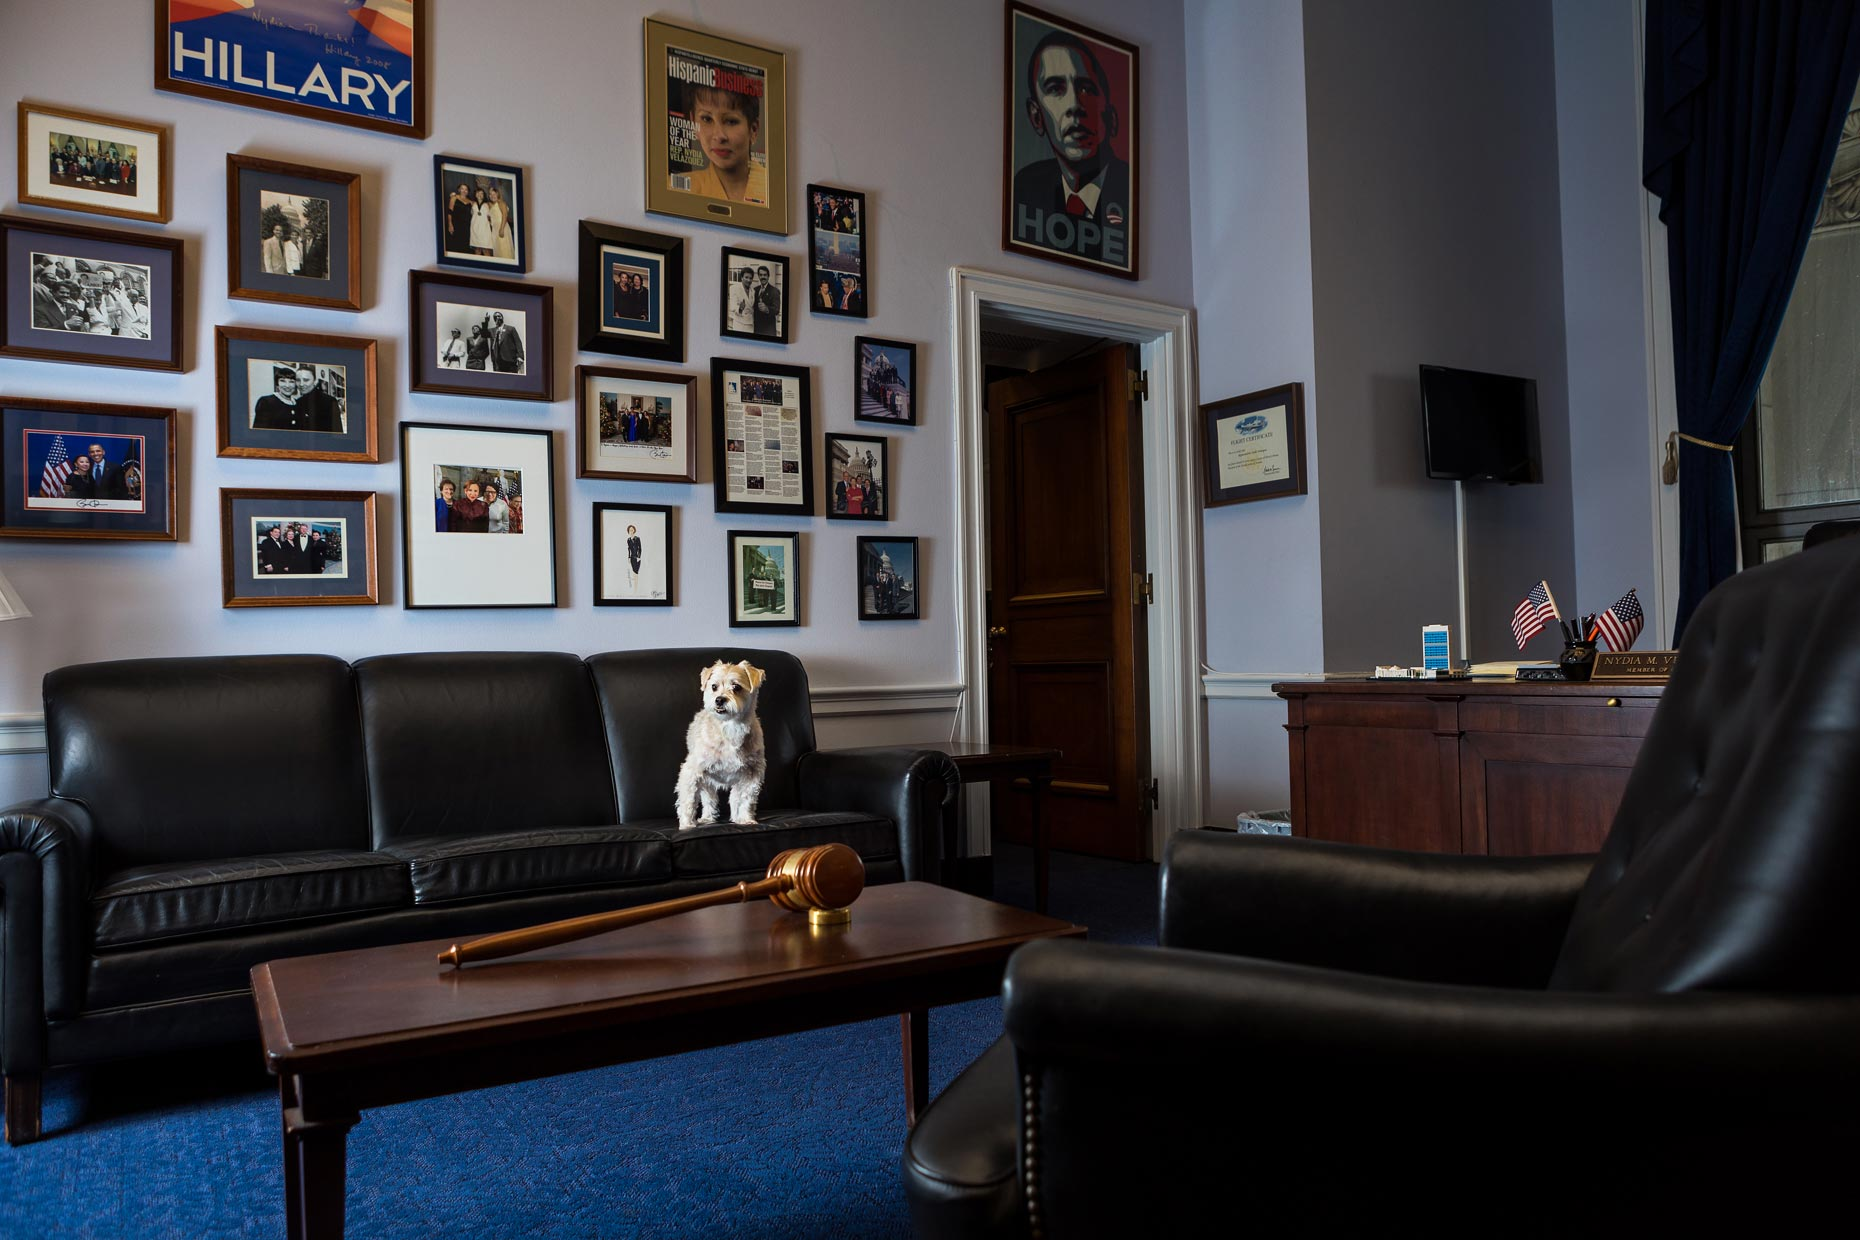 Cricket | Office Dogs of Capitol Hill